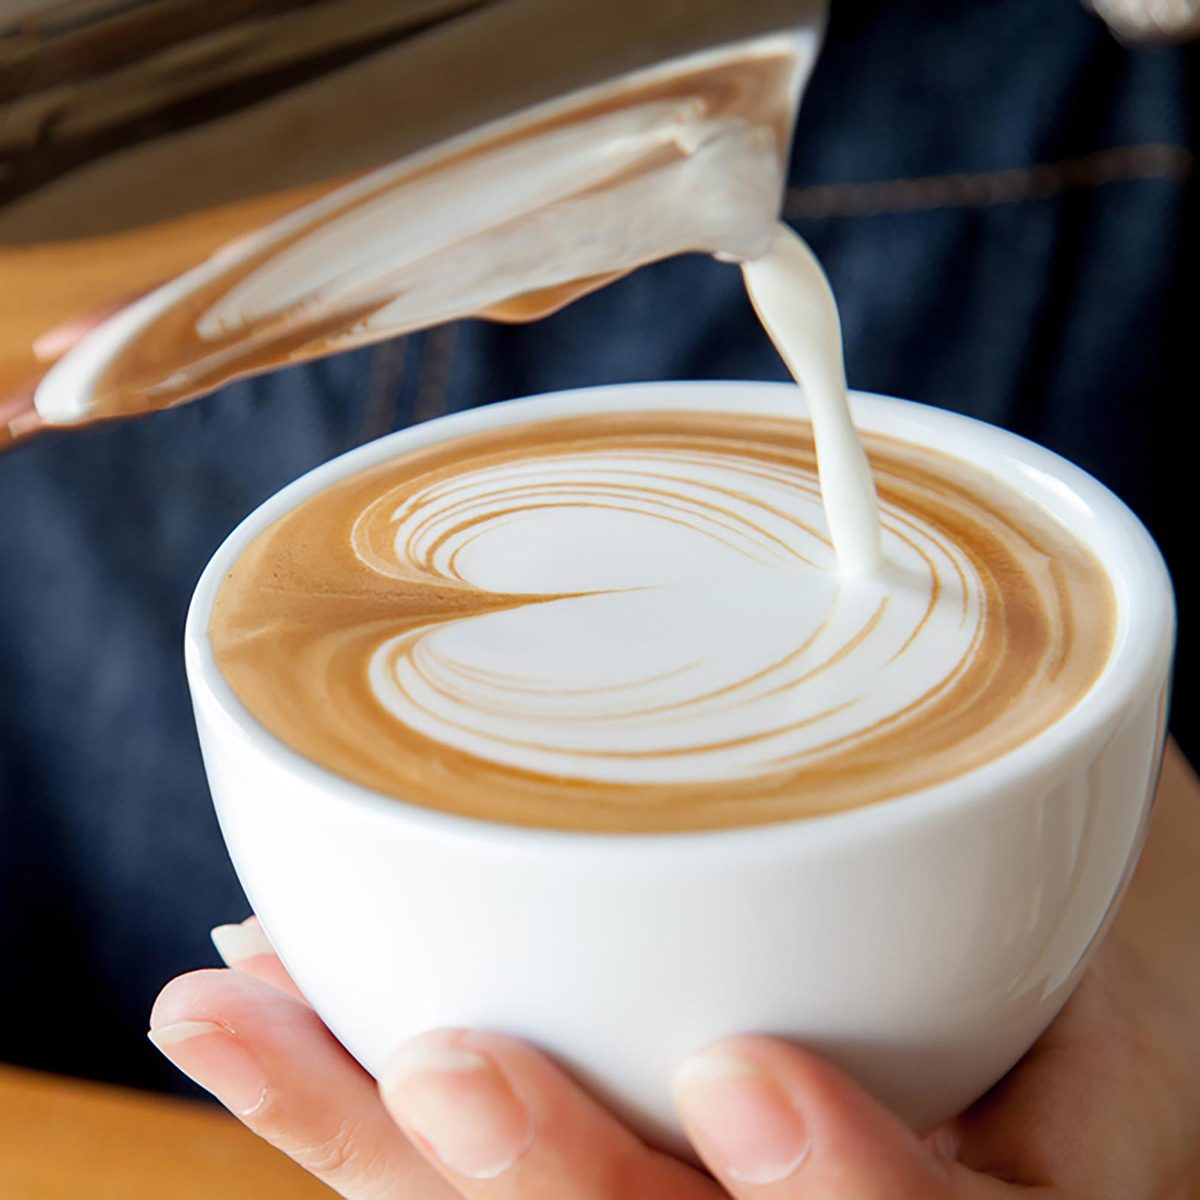 Person pouring milk into their coffee